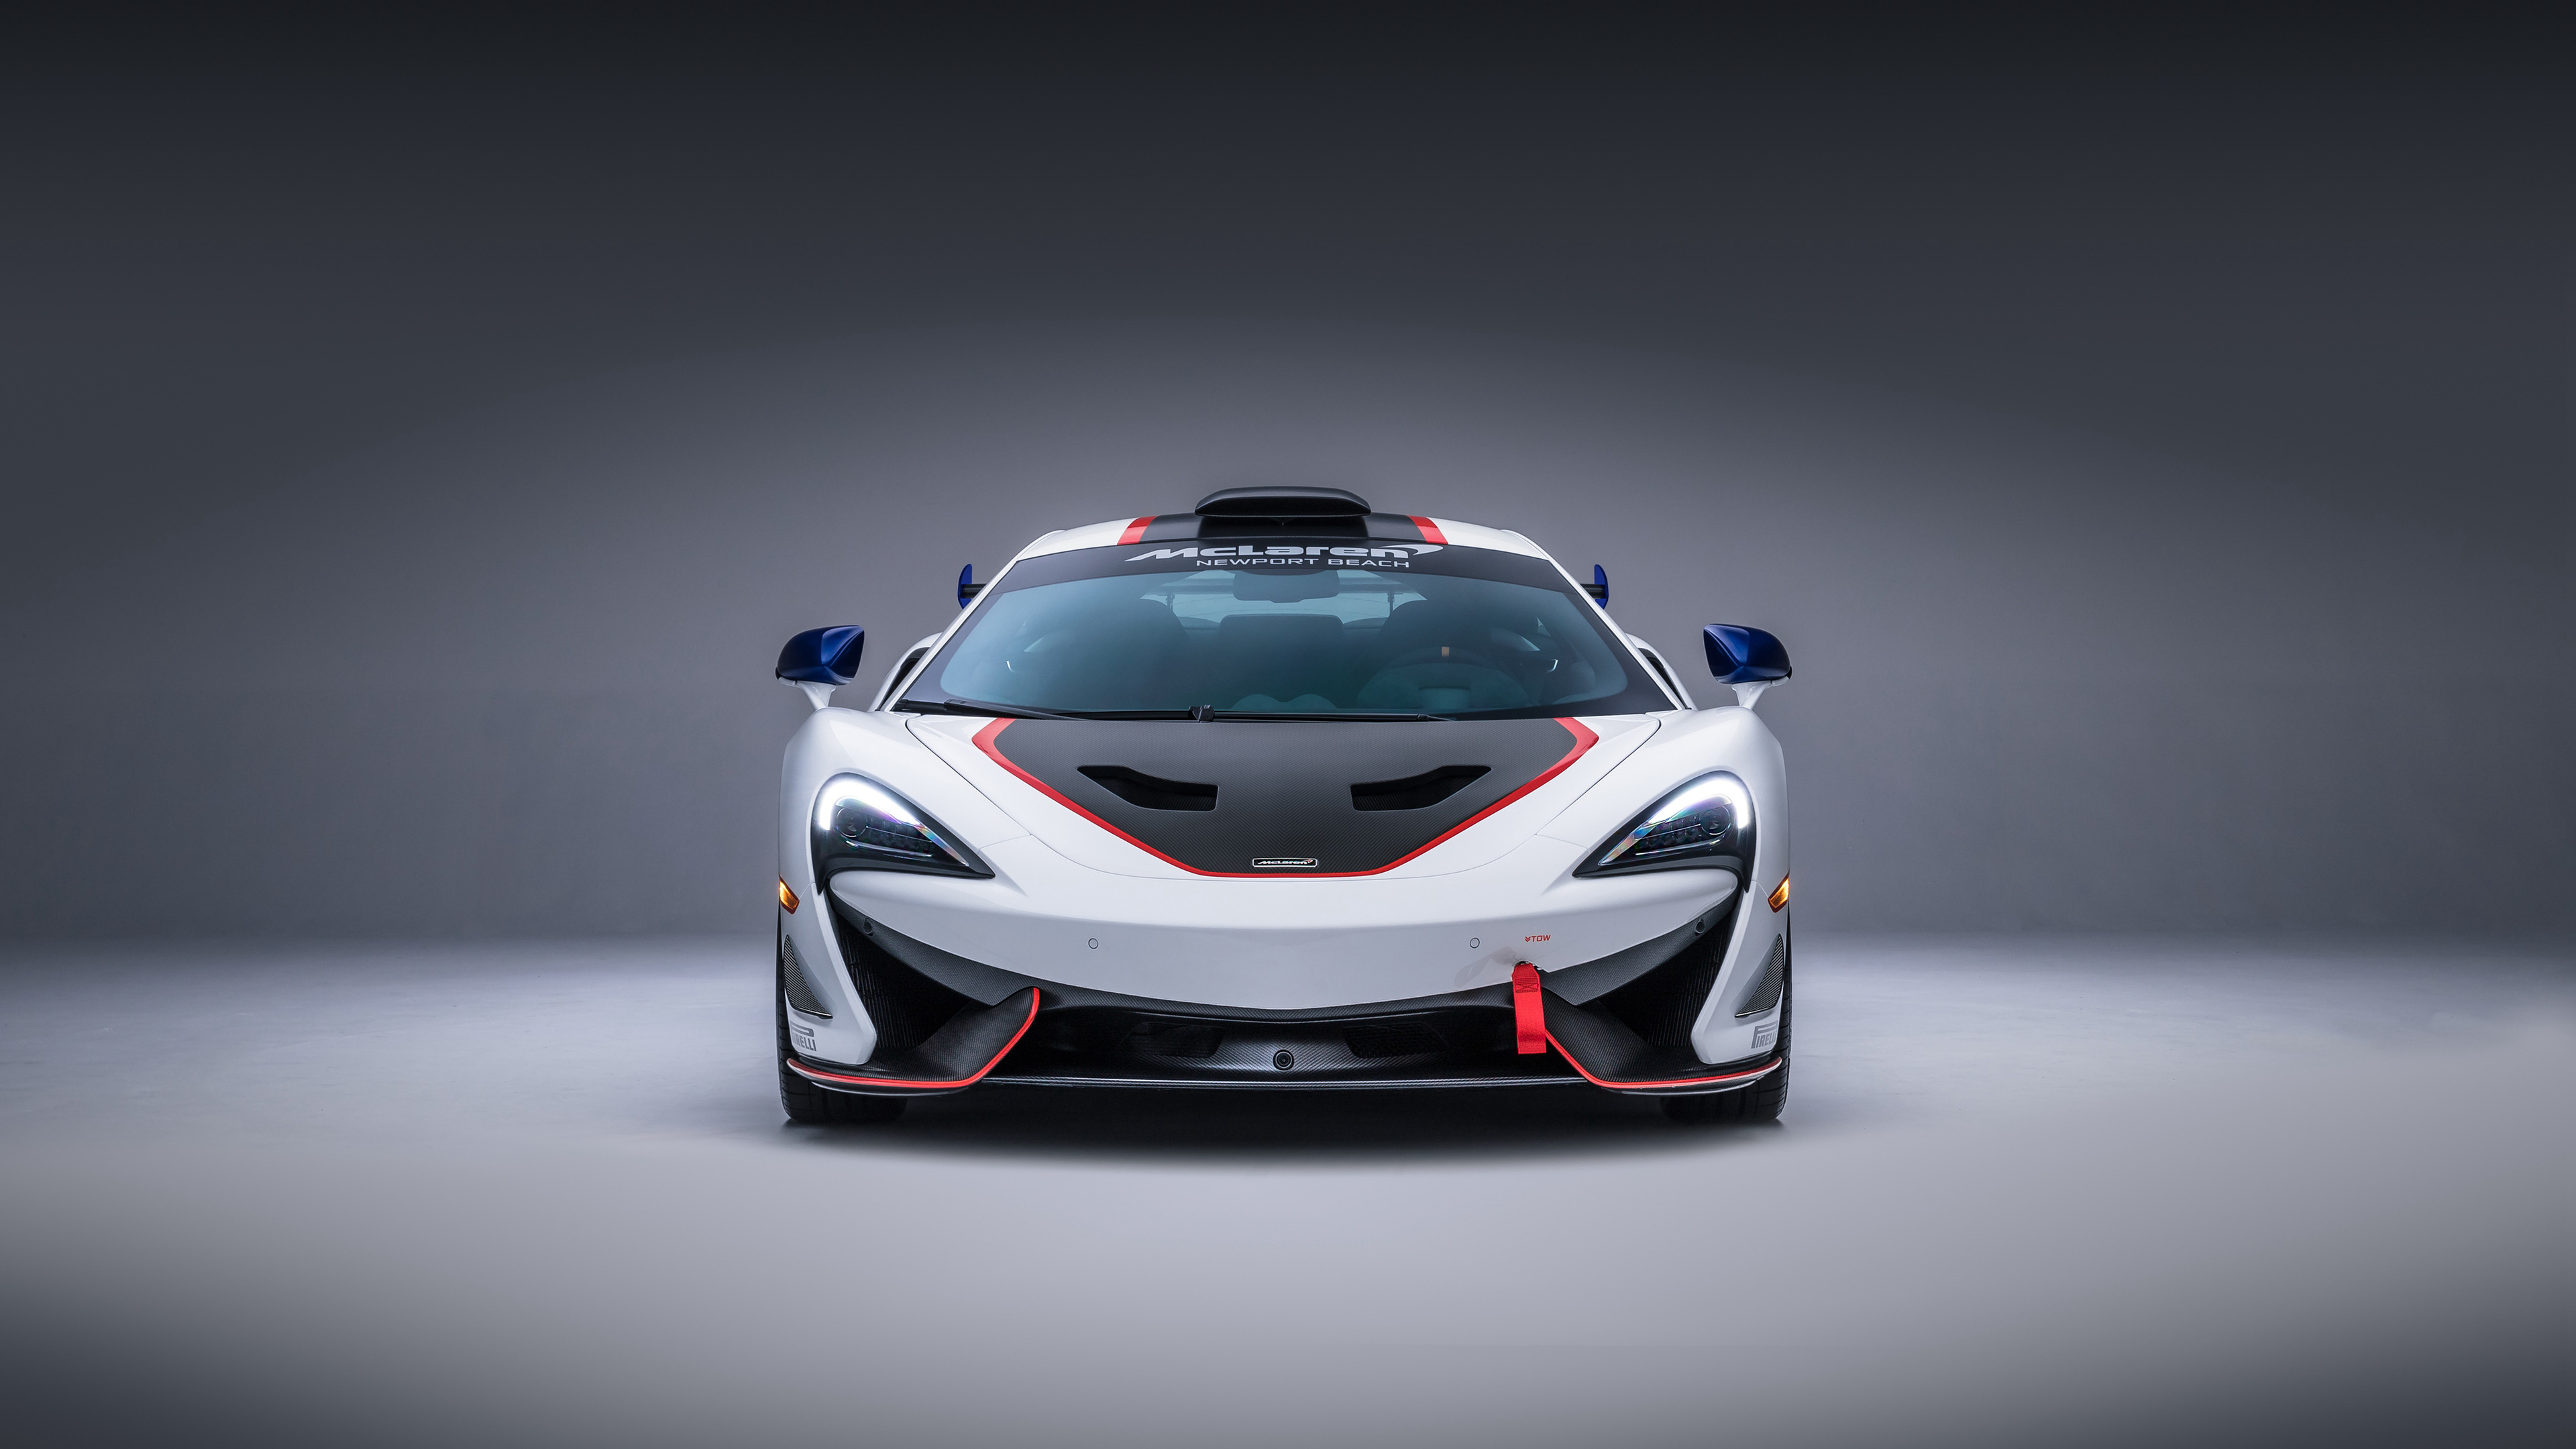 mclaren mso x 2018 1539109240 - McLaren MSO X 2018 - mclaren wallpapers, mclaren mso x wallpapers, hd-wallpapers, cars wallpapers, 4k-wallpapers, 2018 cars wallpapers